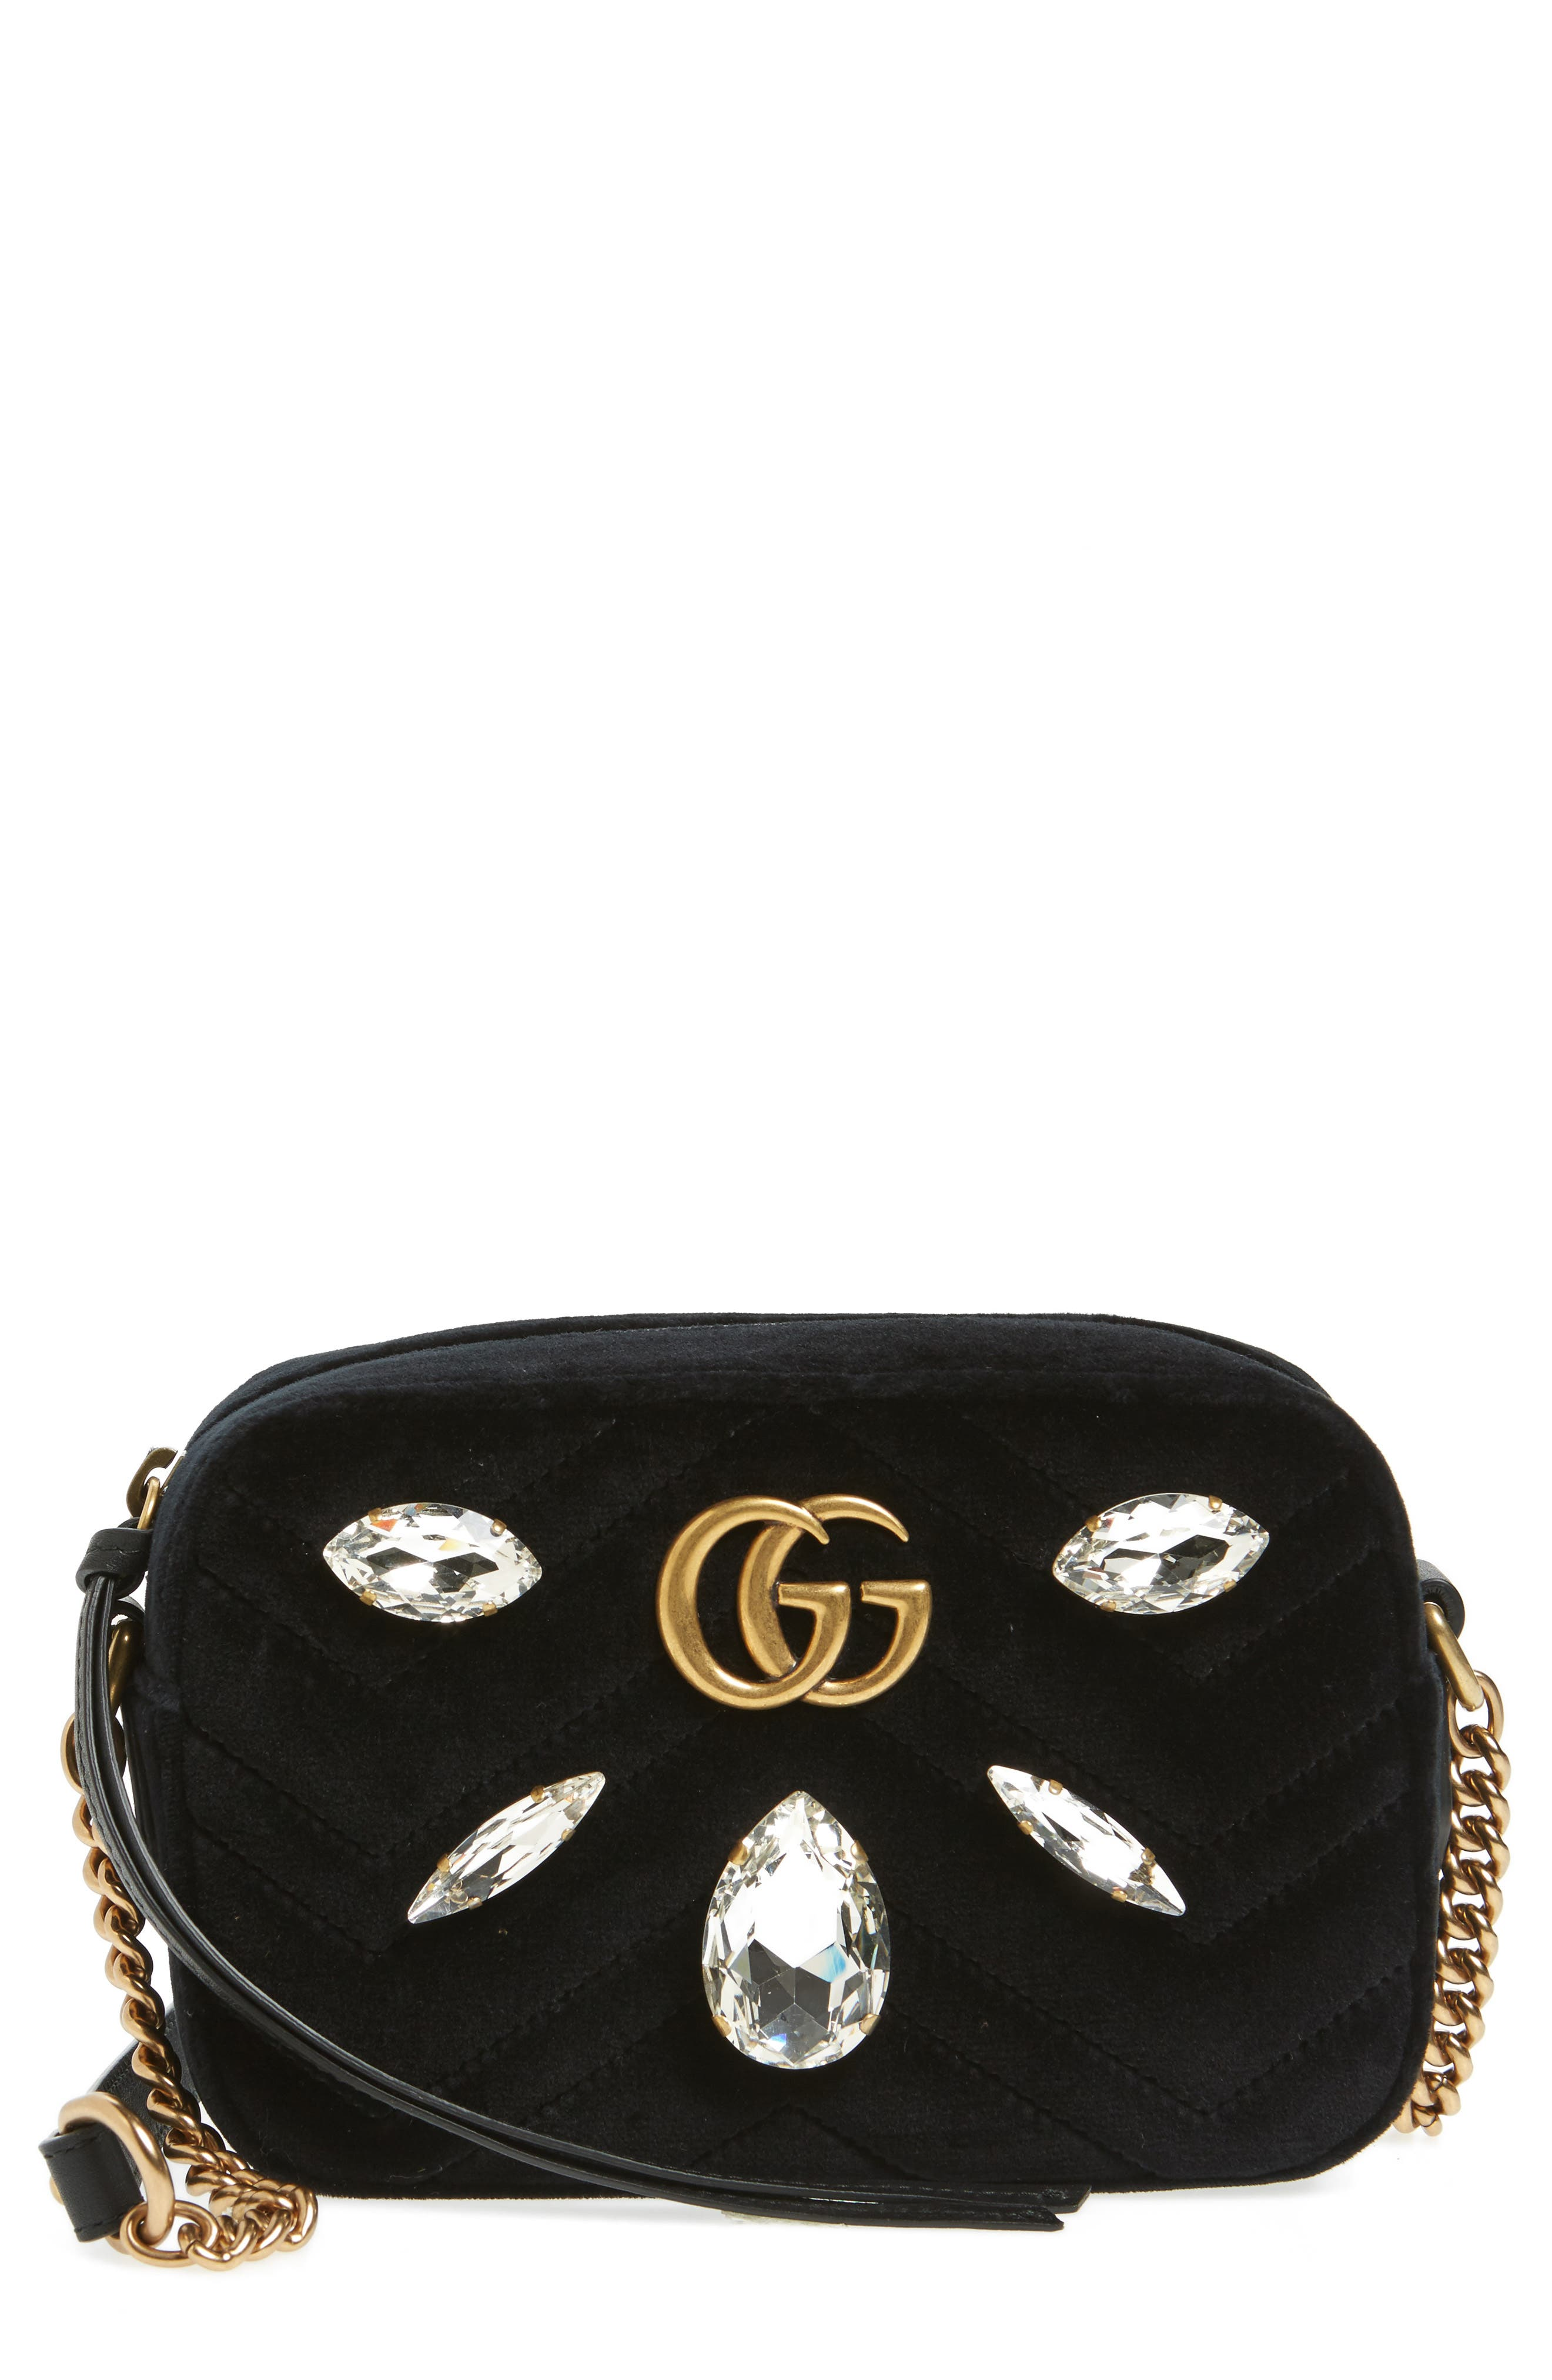 gucci crossbody bag. gucci gg marmont crystal matelassé quilted velvet crossbody bag -